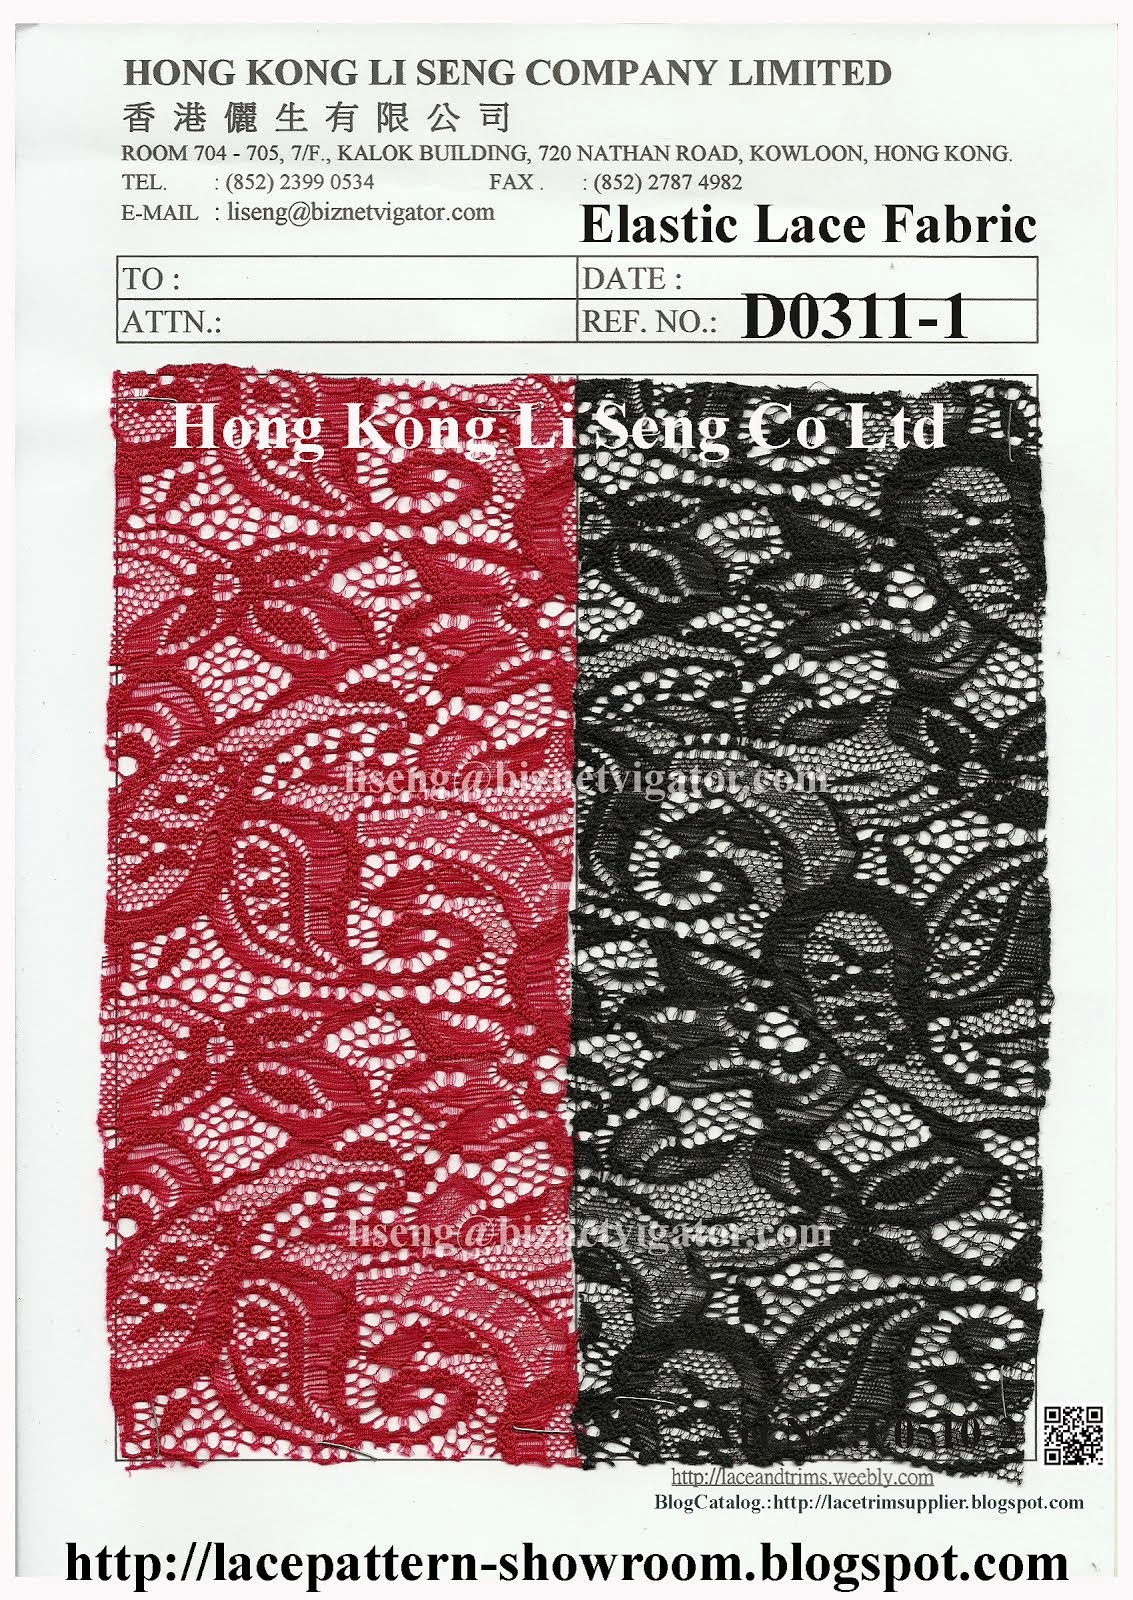 Elastic Lace Fabric - Hong Kong Li Seng Co Ltd